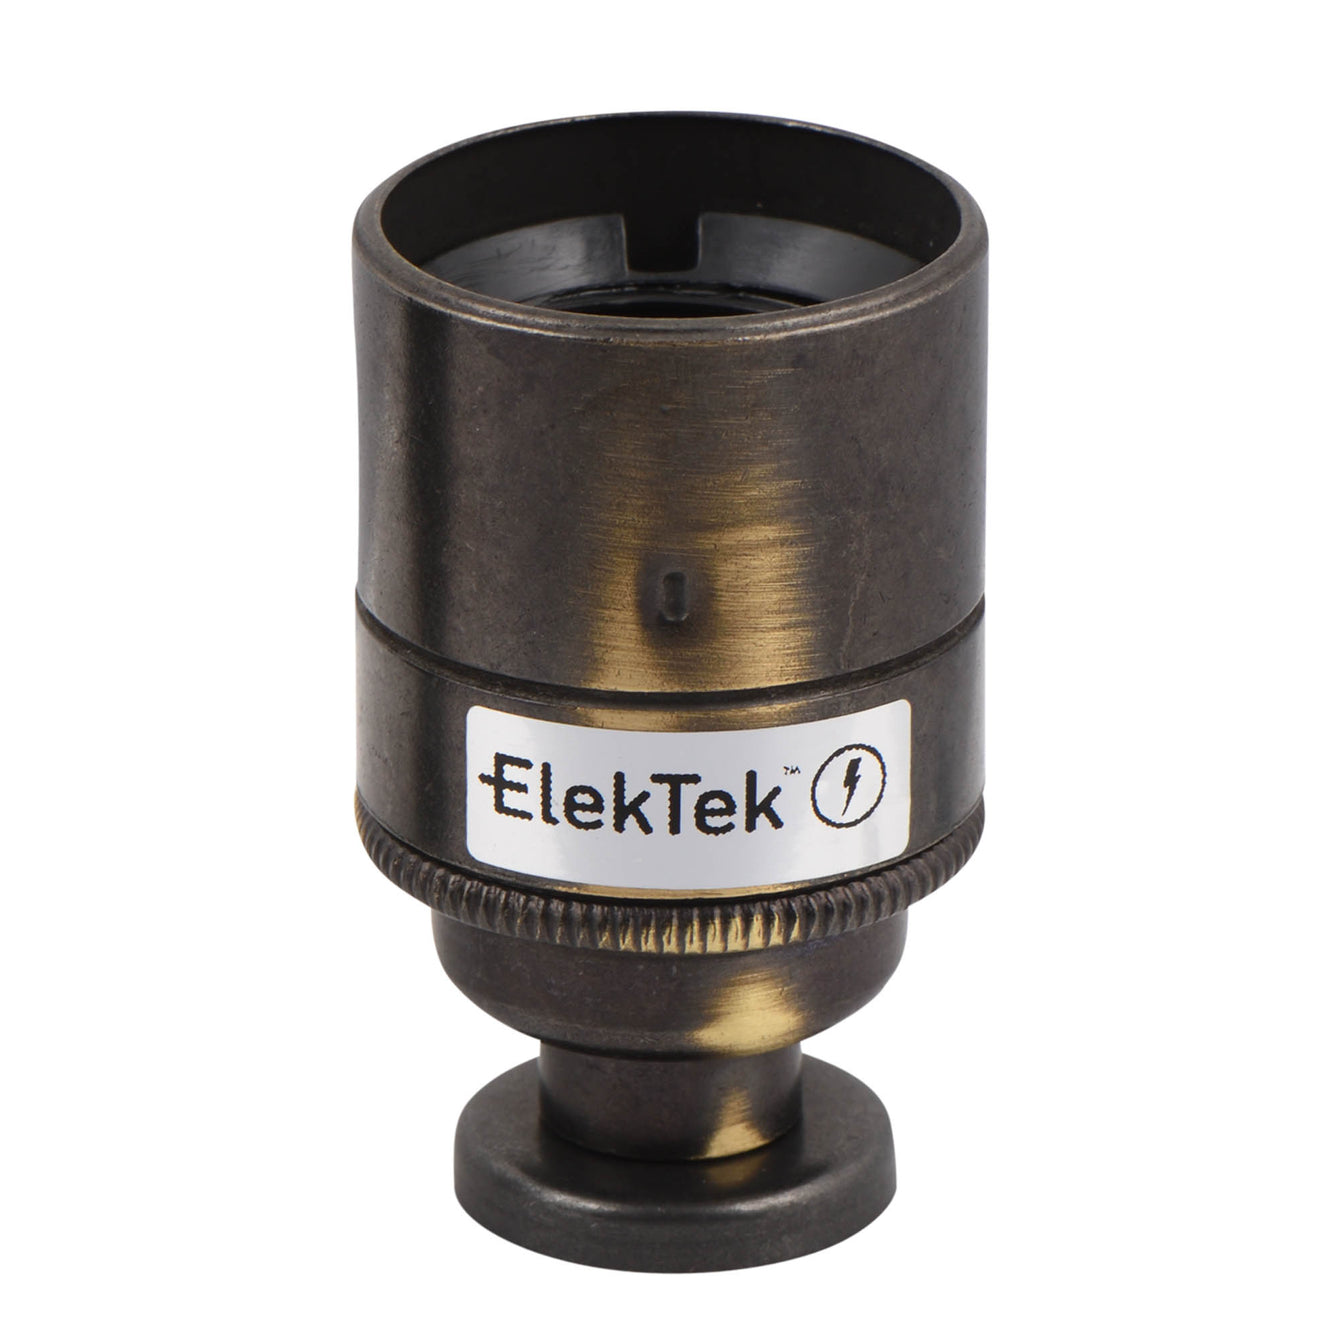 ElekTek ES Edison Screw E27 Lamp Holder Plain Skirt With Back Plate Cover and Screws Brass - Buy It Better Bronze